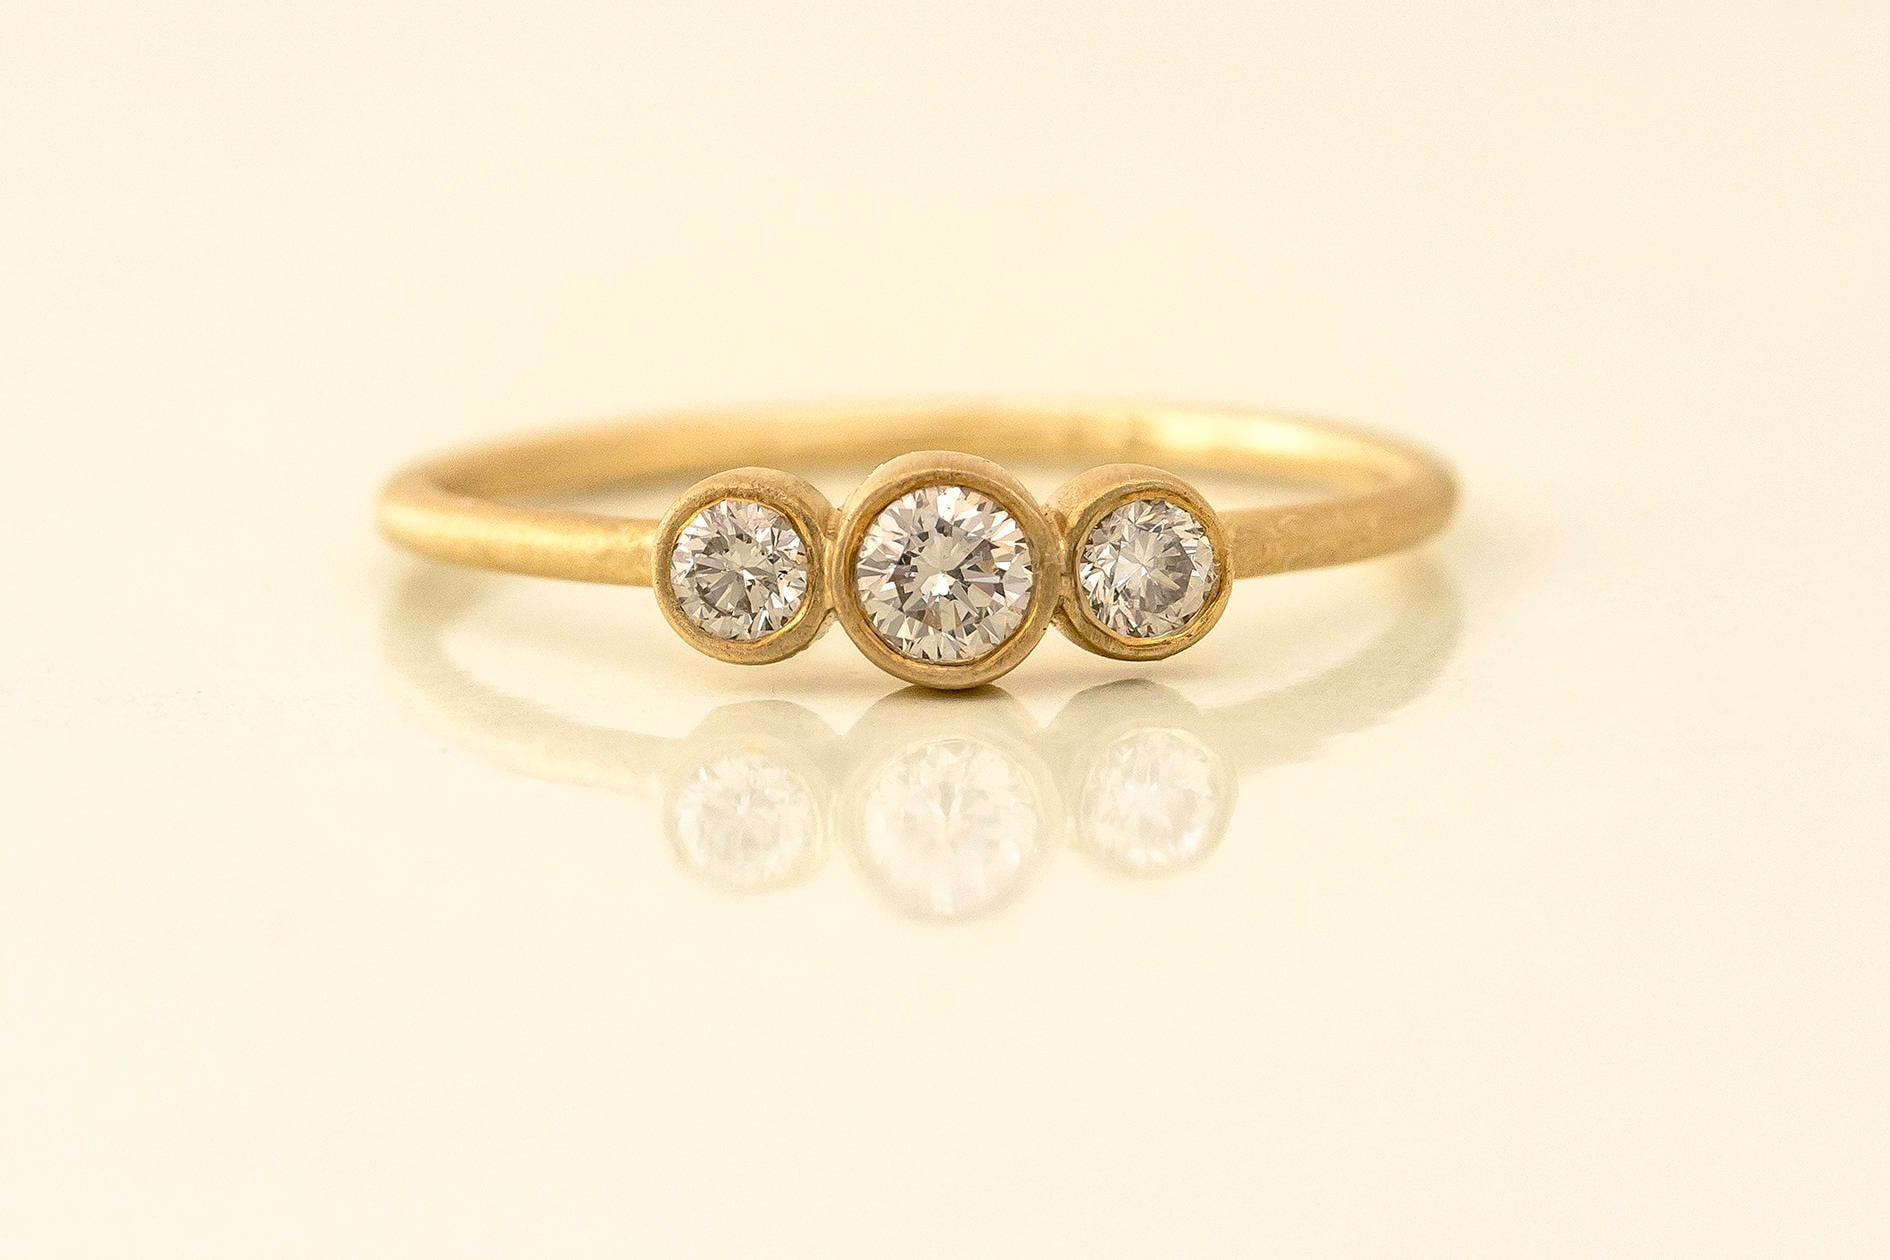 band modern gold diamond little engagement good thing chevron for thin wedding pave pretty rings an com pinterest ring unusual v pin retroette or